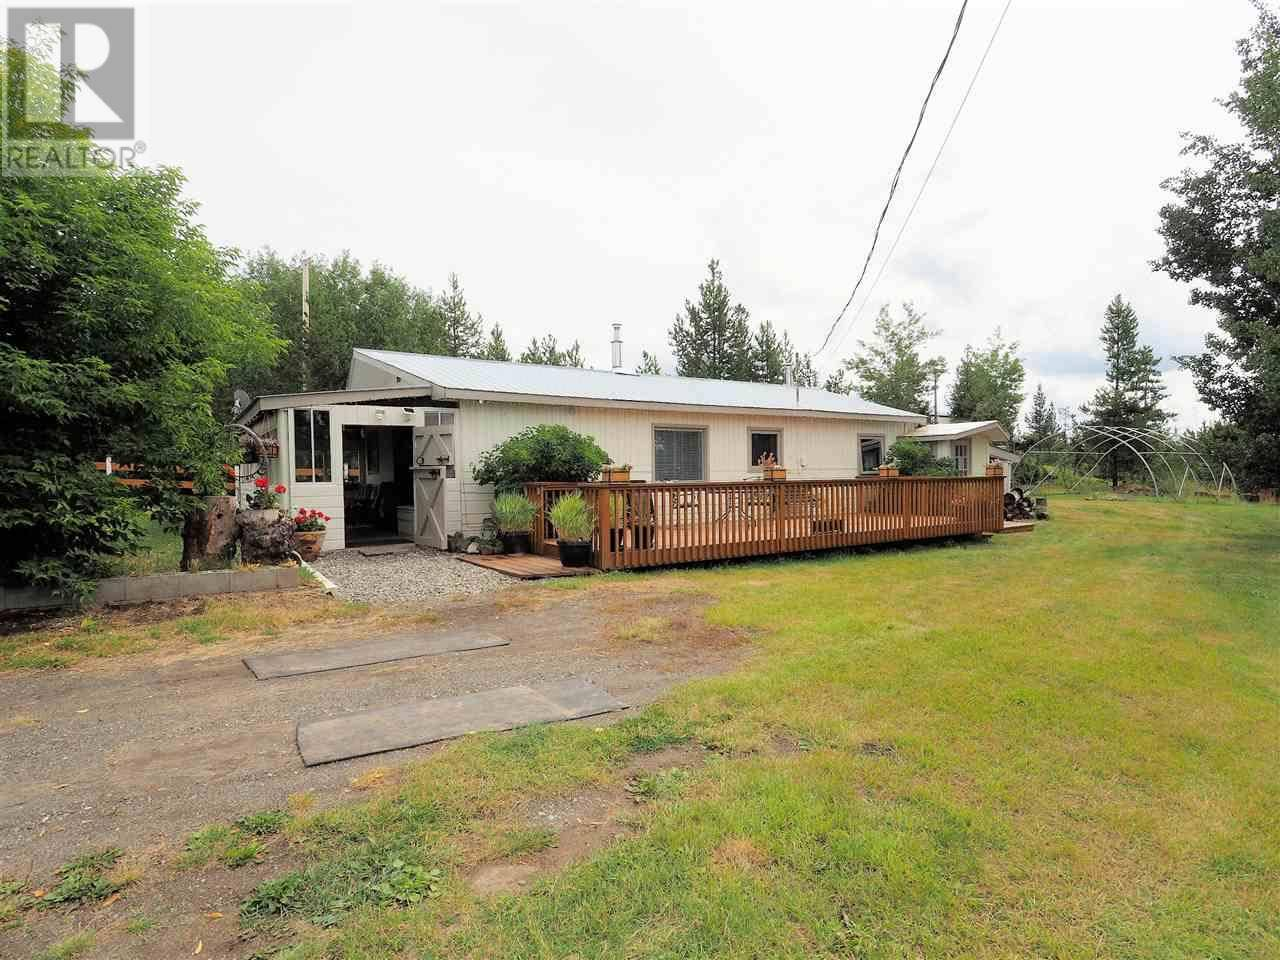 House for sale at 2412 Pine Rd 70 Mile House British Columbia - MLS: R2395258